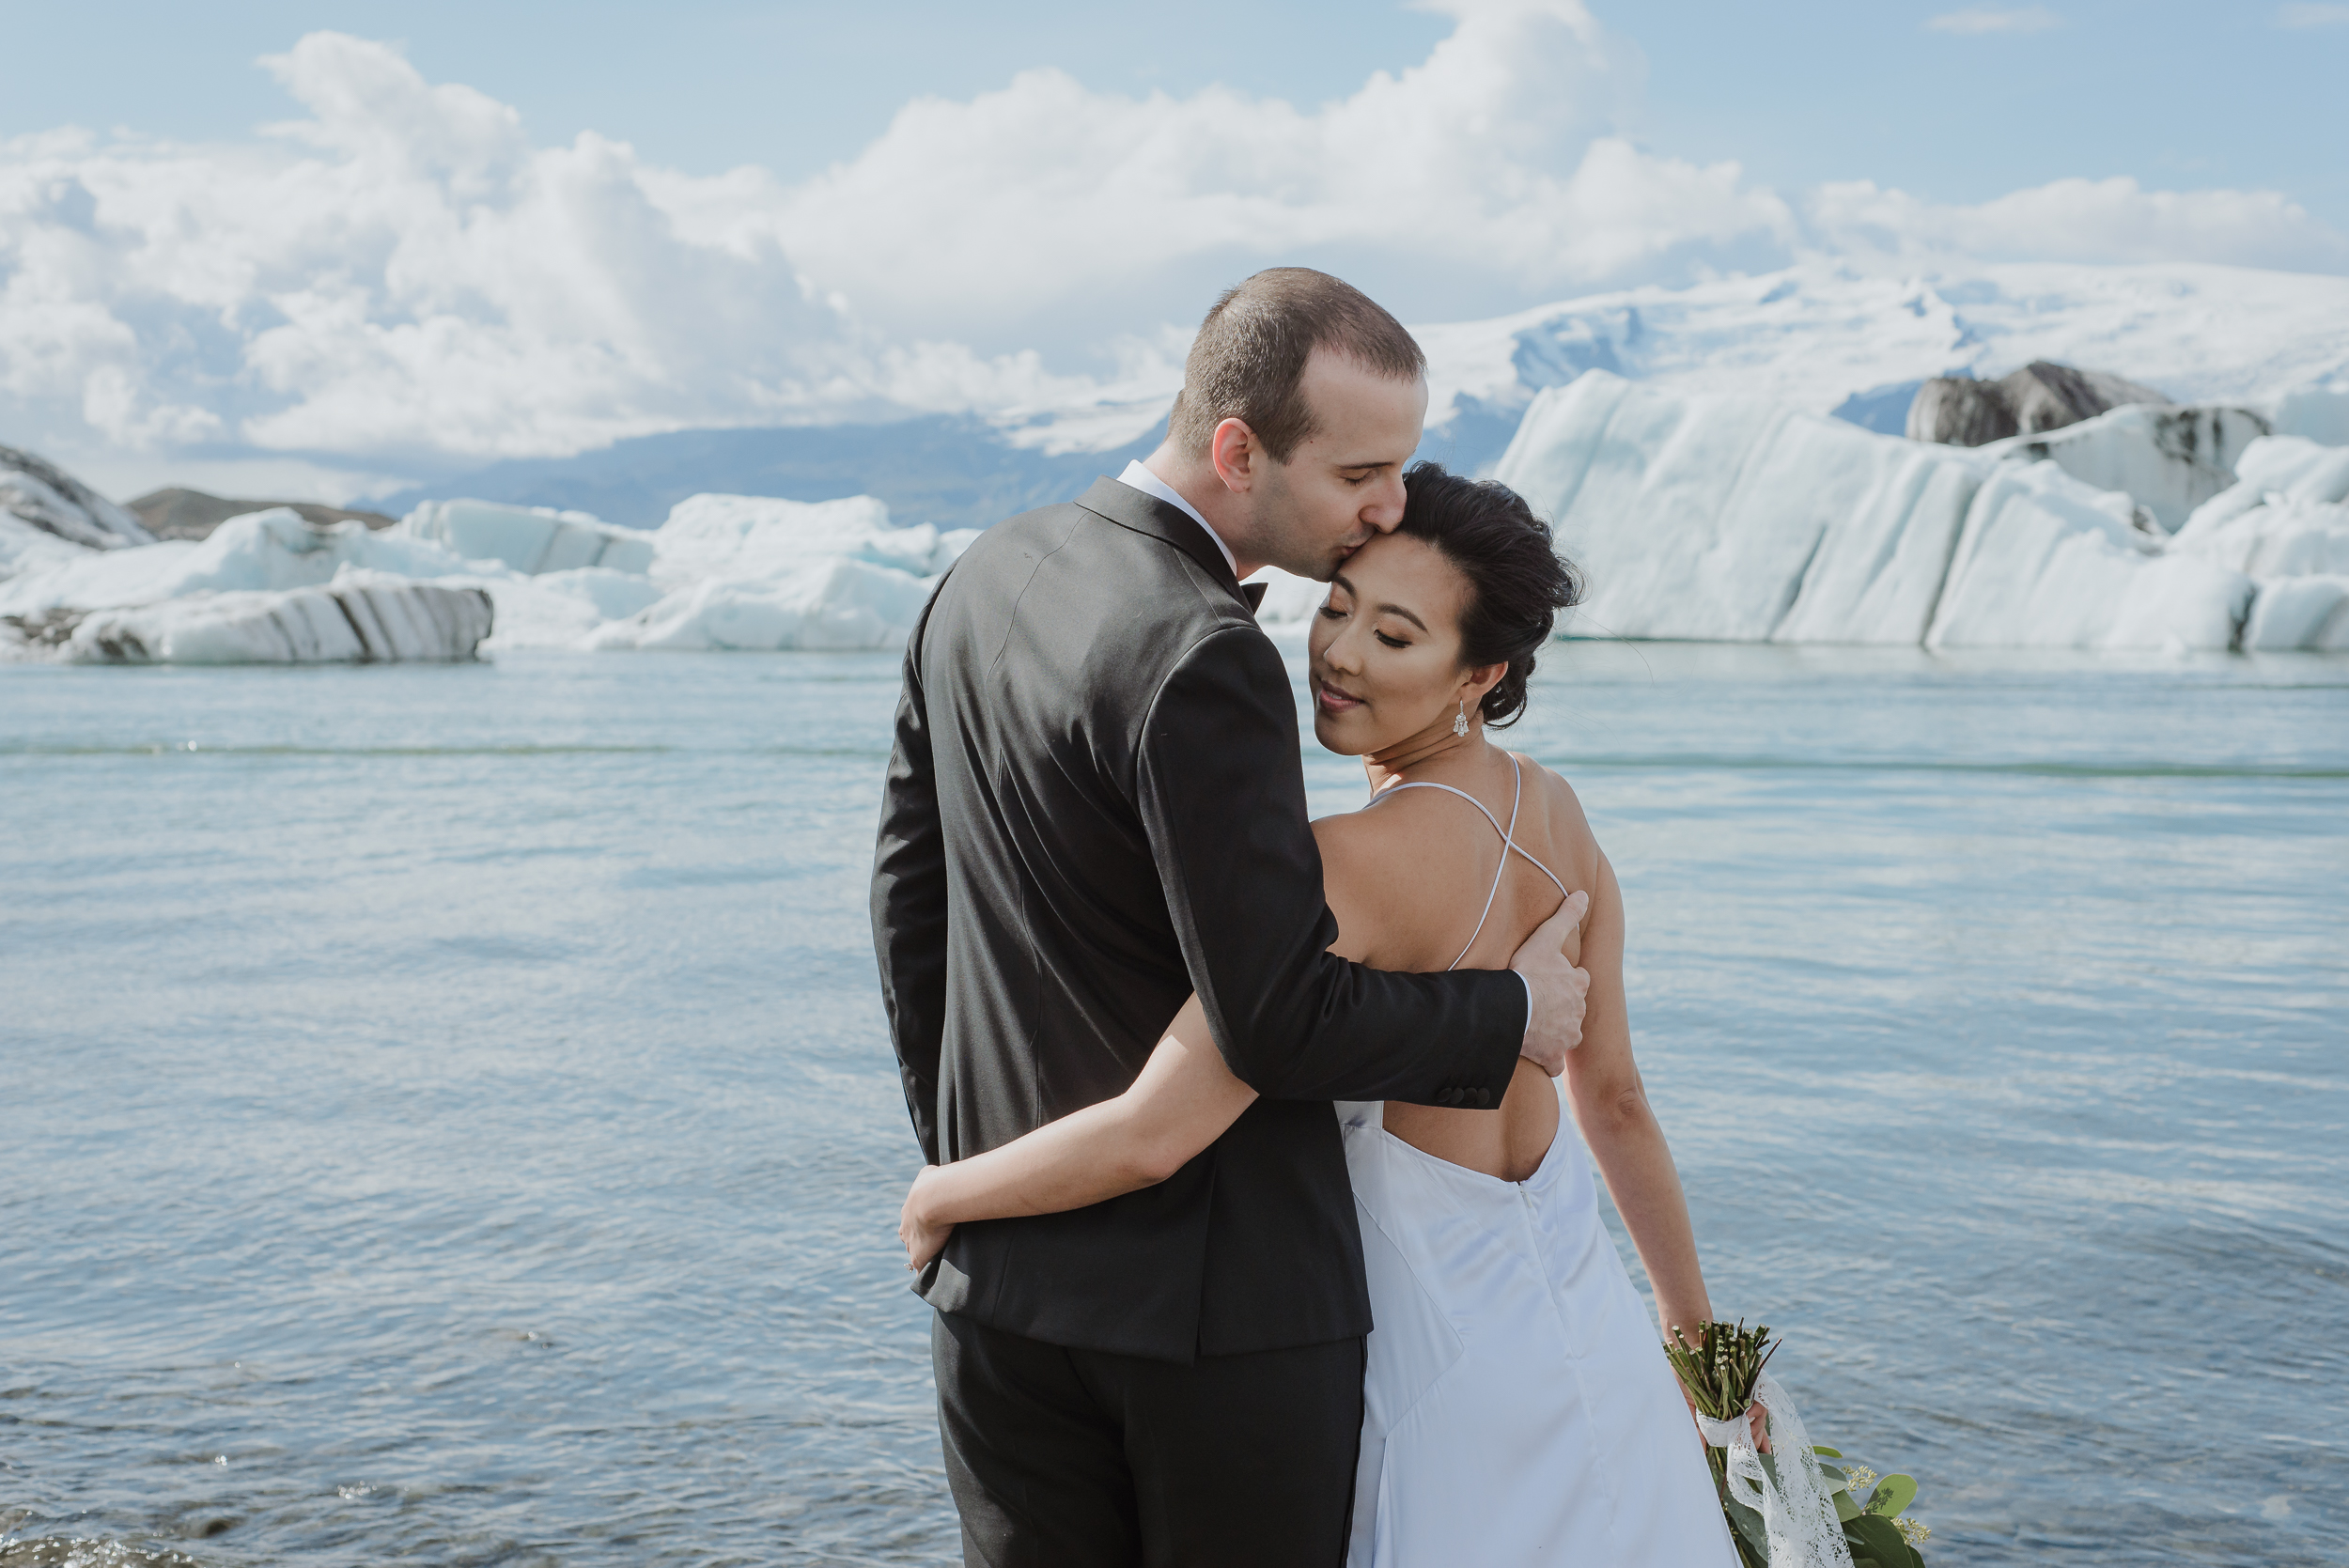 04-destination-wedding-iceland-engagement-session-vivianchen-080.jpg